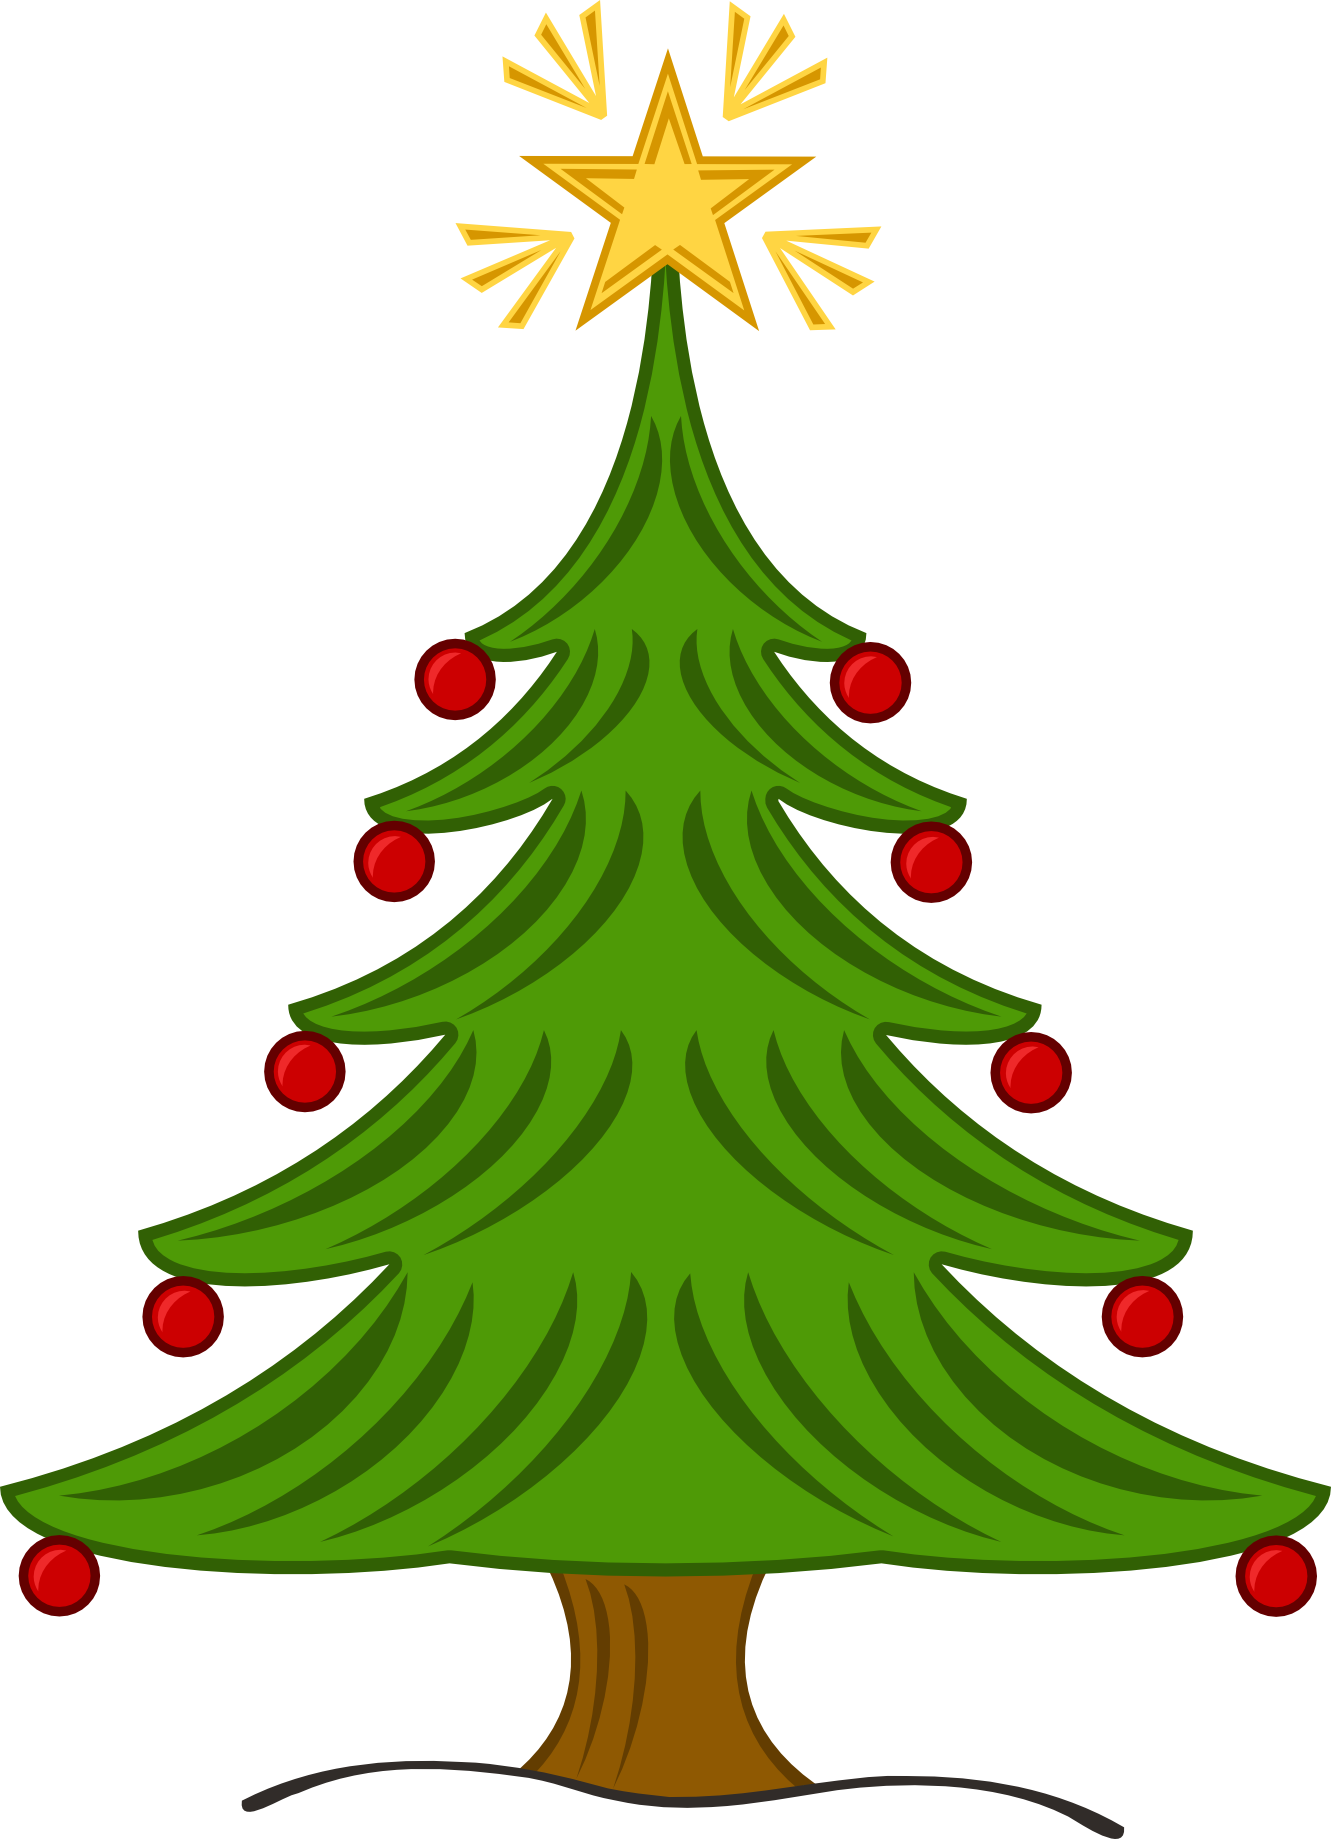 1331x1839 Christmas Tree Clip Art With Lights Free Clipart